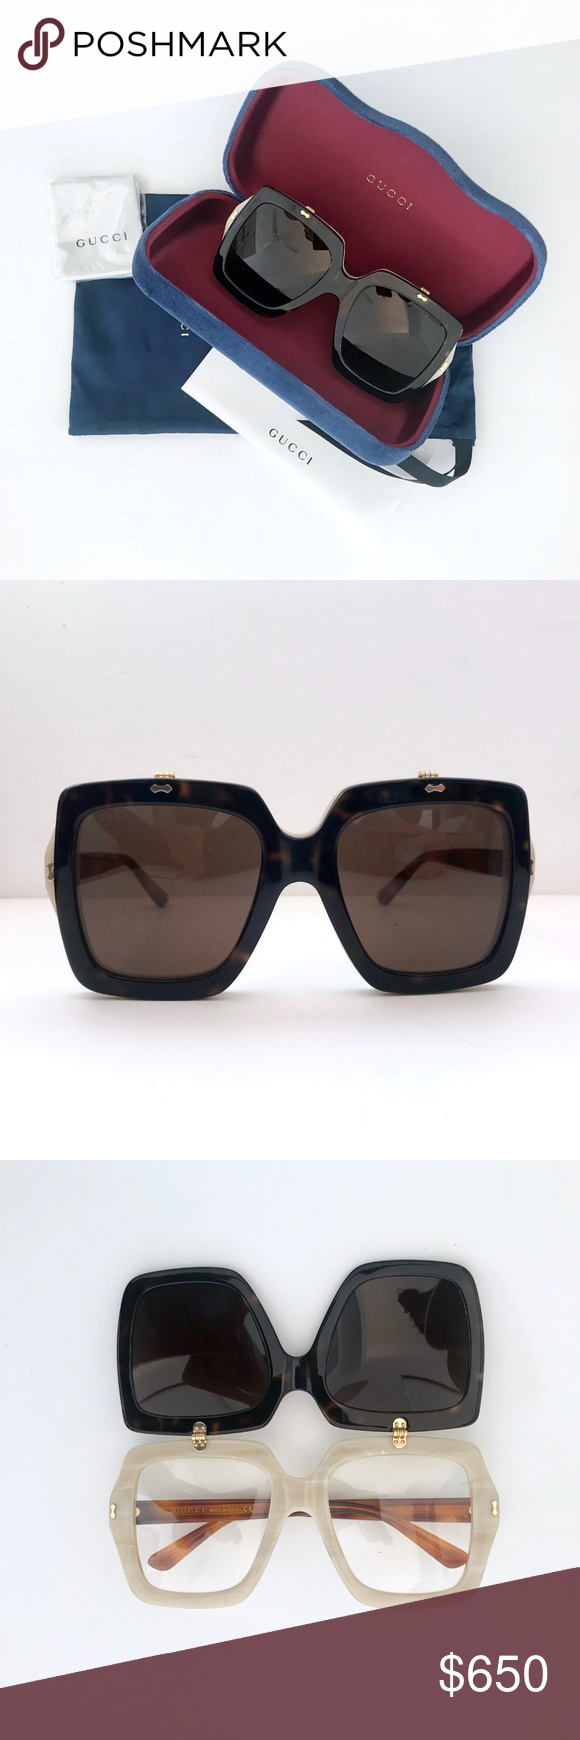 ed24ab82a5 GUCCI Flip Up GG 0088S Havana Sunglasses Oversized Sold out and hard to  find GUCCI Flip